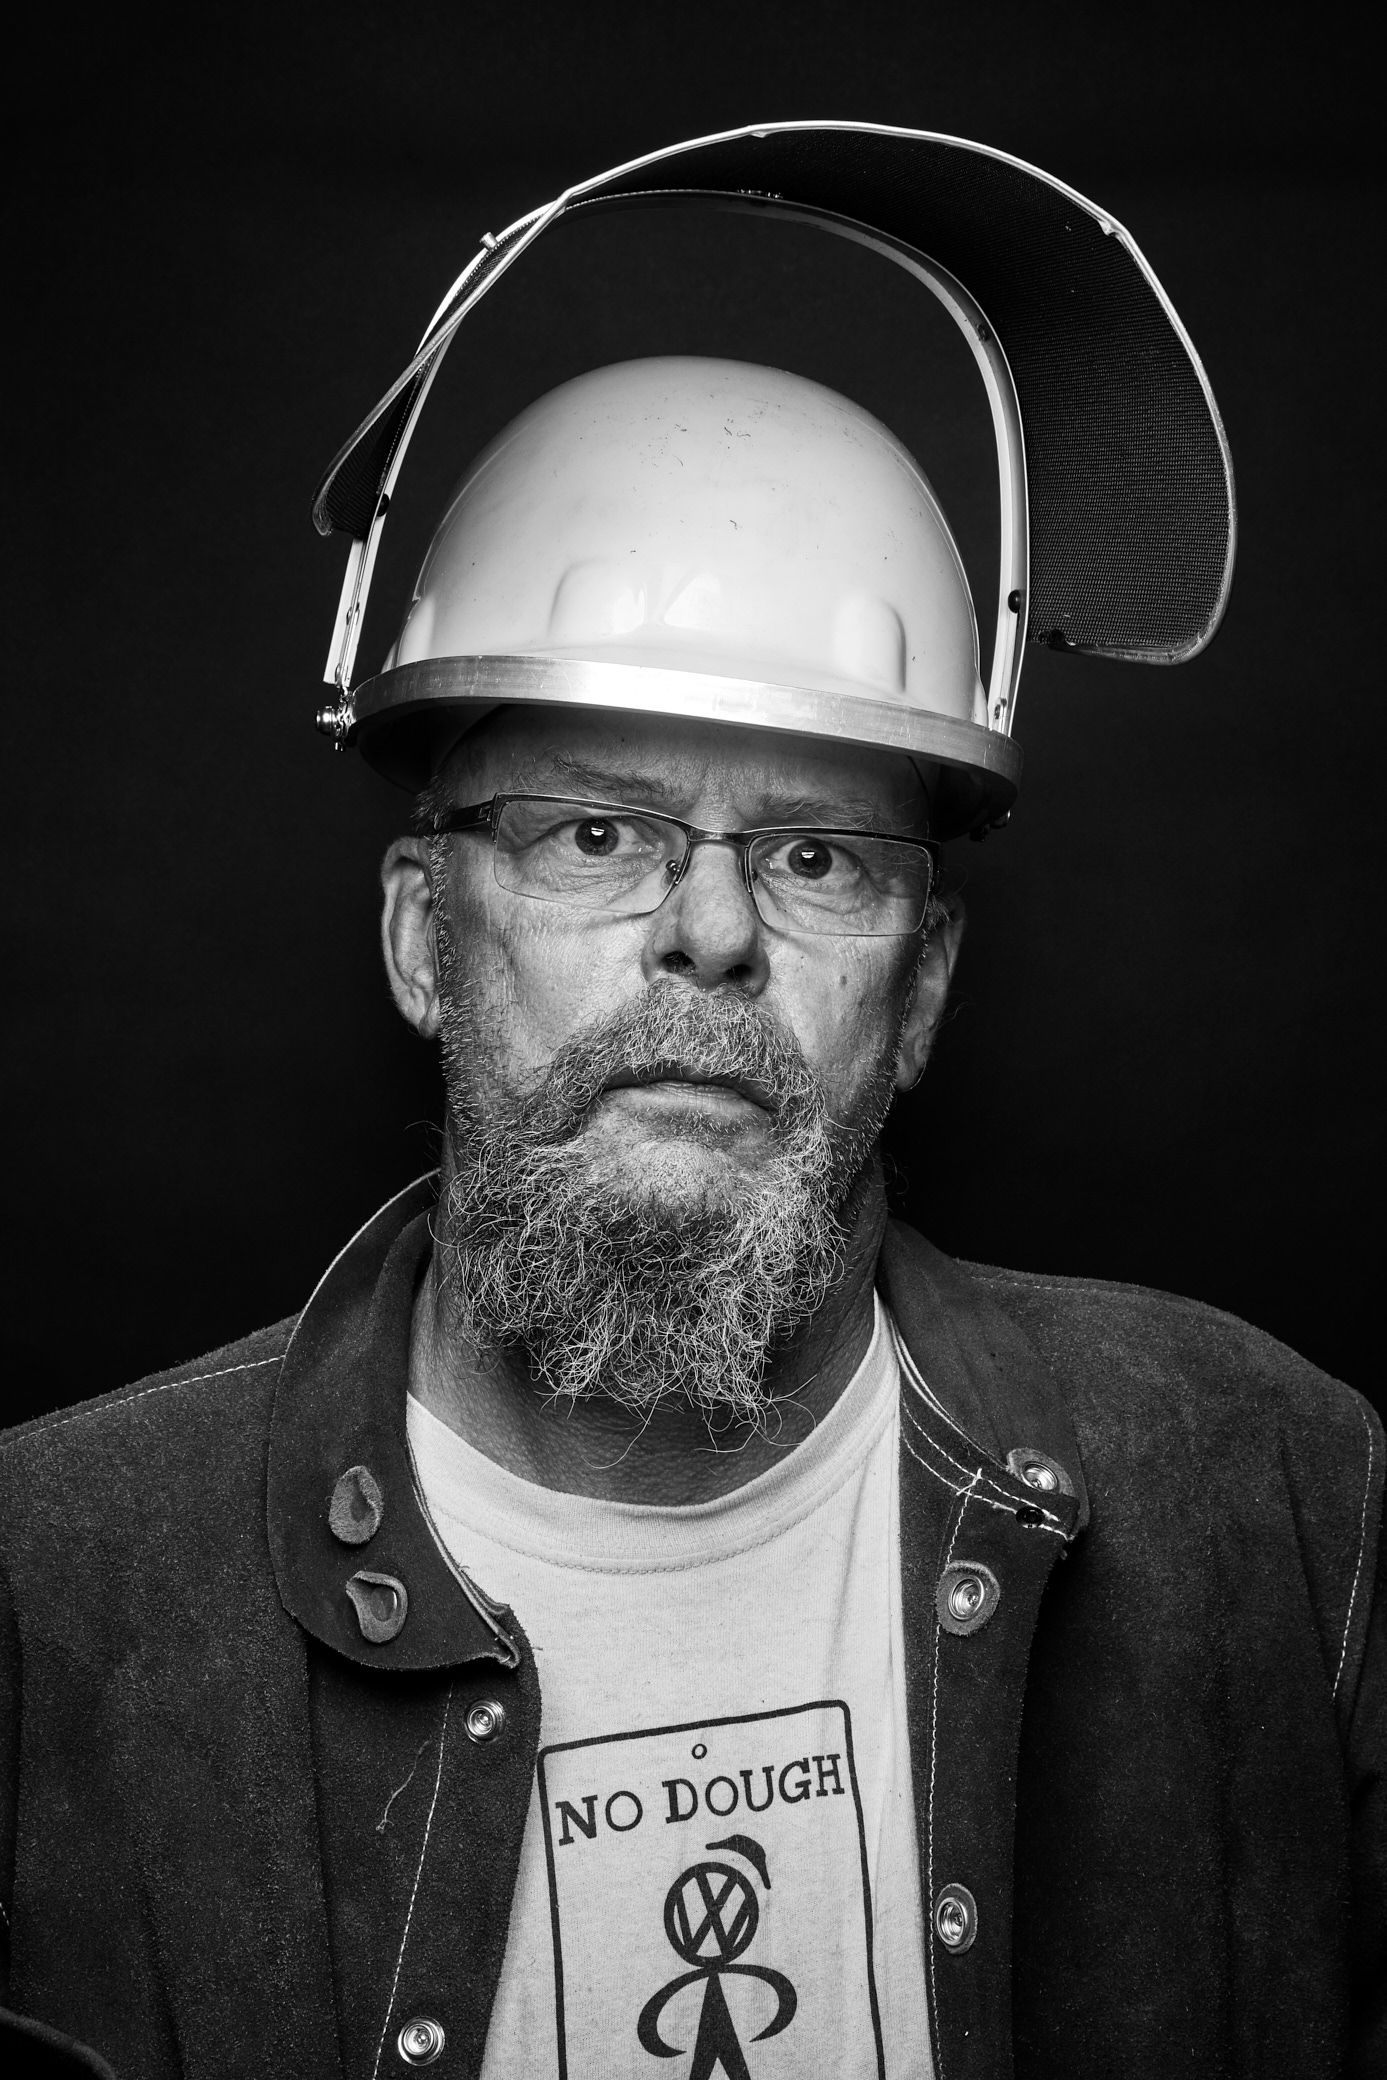 Iron Pour Artist portrait in black and white